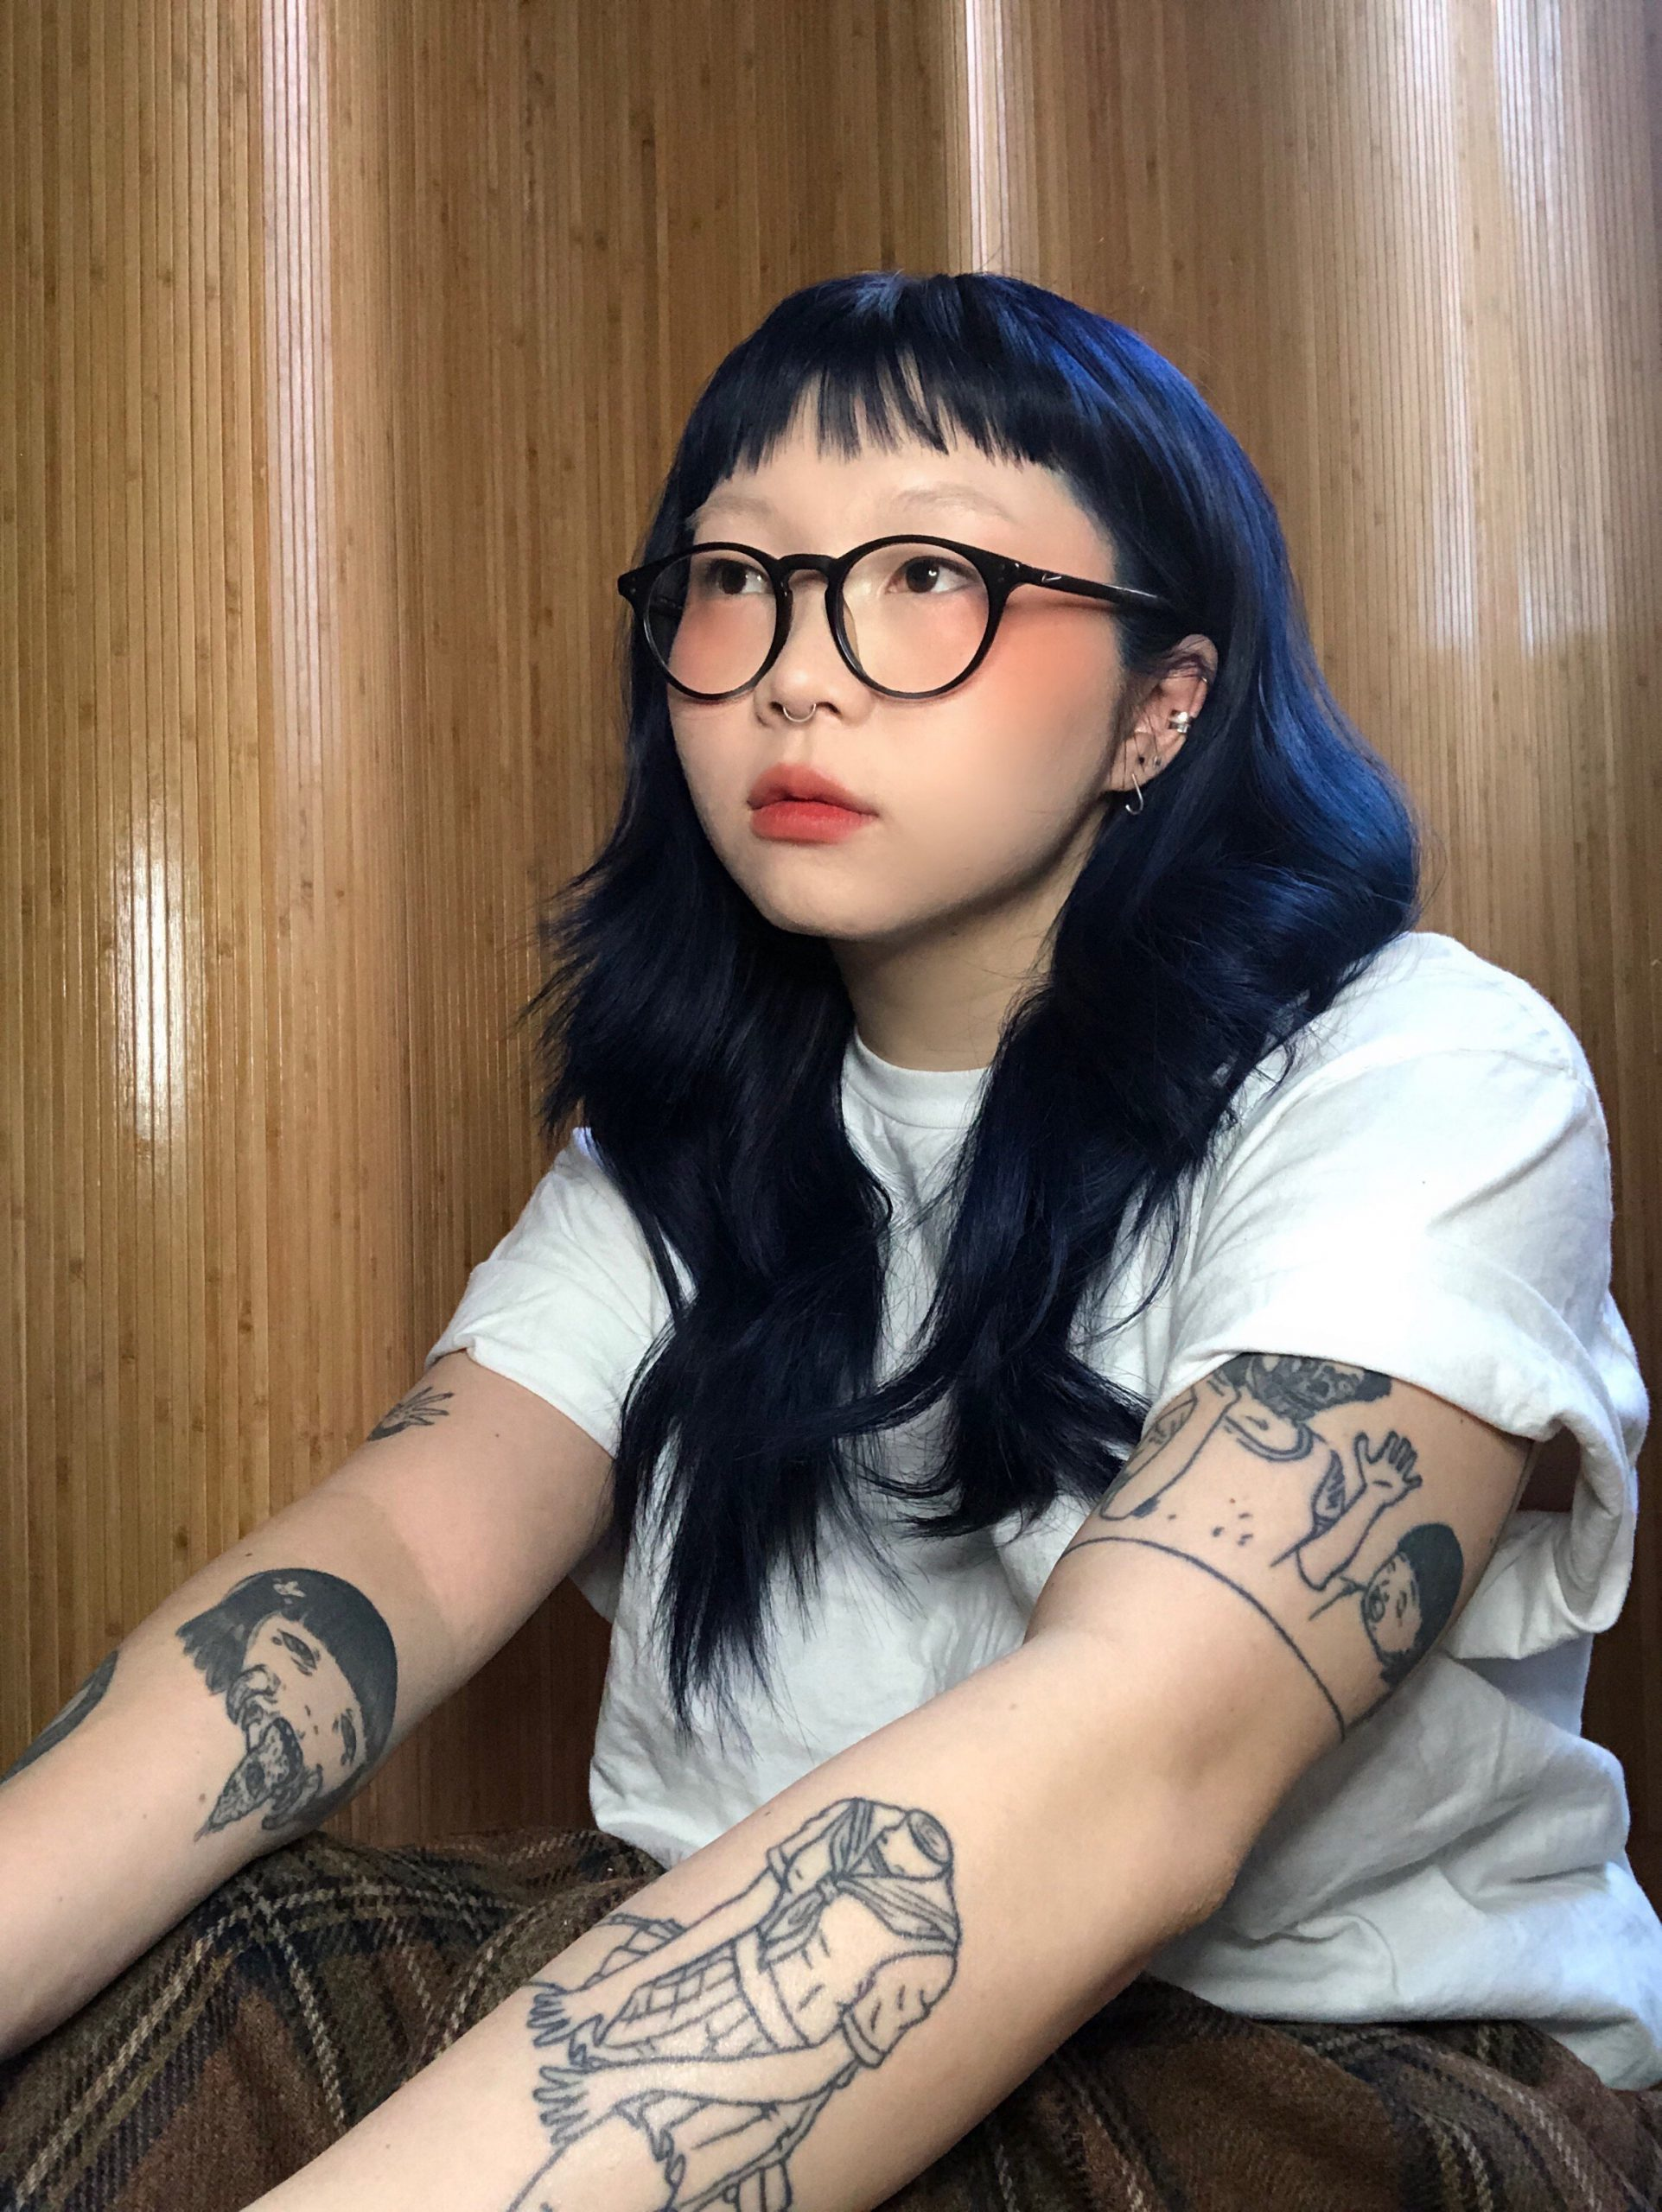 Alee is a New York-based creative from San Francisco. When she isn't having an existential crisis, you can catch her playing rhythm games, impulsively buying skincare, or listening to Jersey club and nightcore remixes during her insomnia episodes.